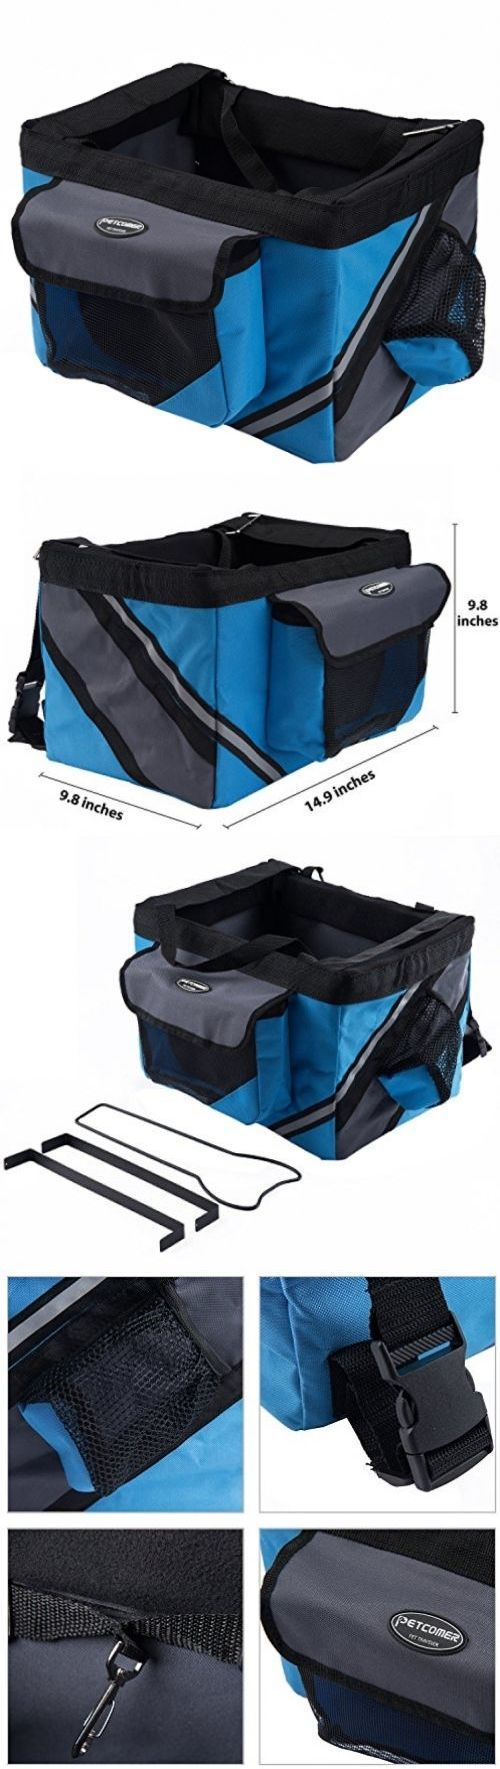 Bike baskets and trailers pettom portable pet cat dog bicycle